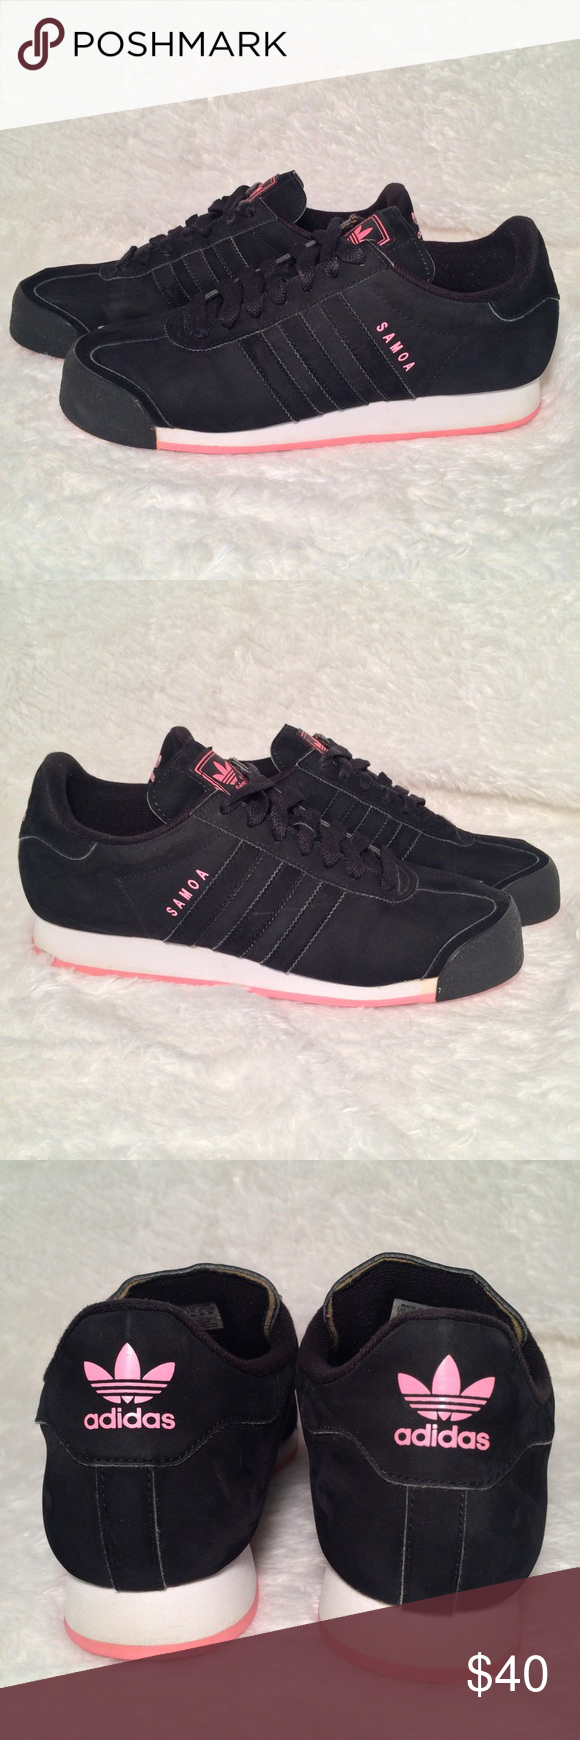 179bb2f85075ee Women s Adidas Samosa Sneakers Size 9.5 In great condition. There is a  small crack in